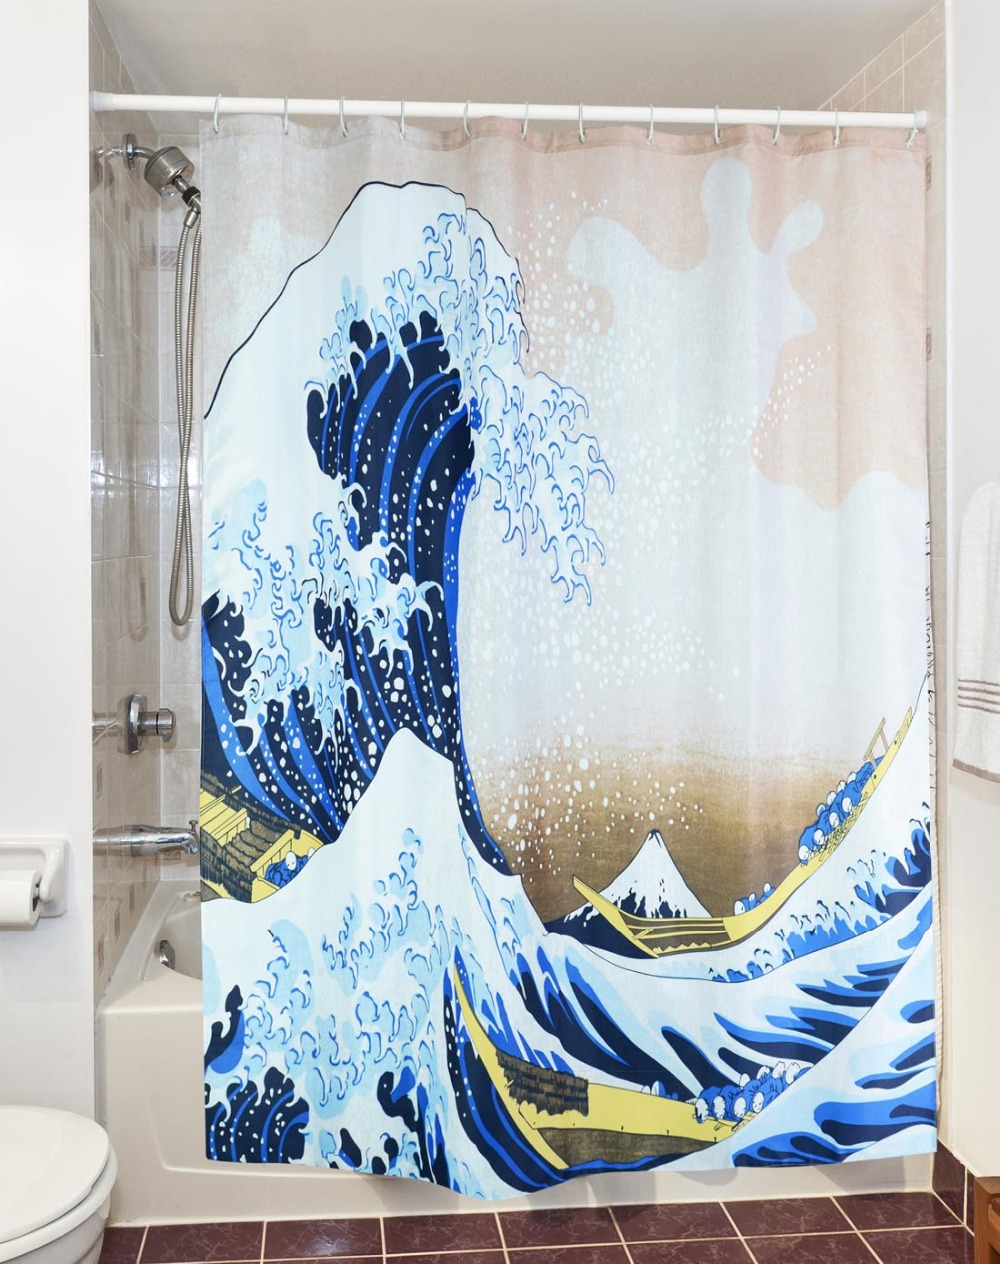 grand wave de kanagawa waterproof shower curtains polyester bathroom bath curtains ocean cortinas de bano 180180cm hooks